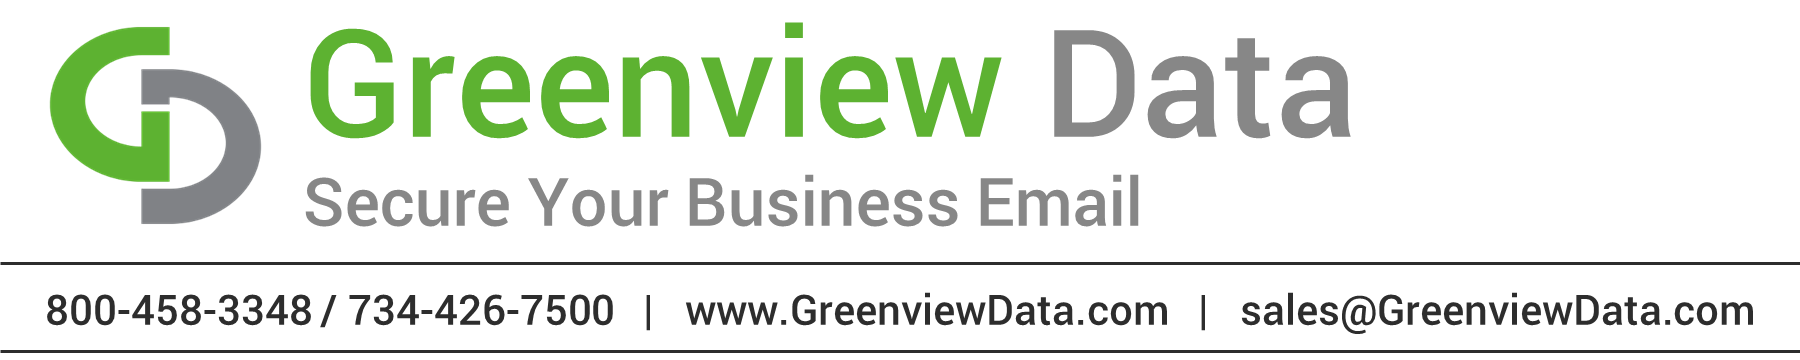 Greenview Data Blog